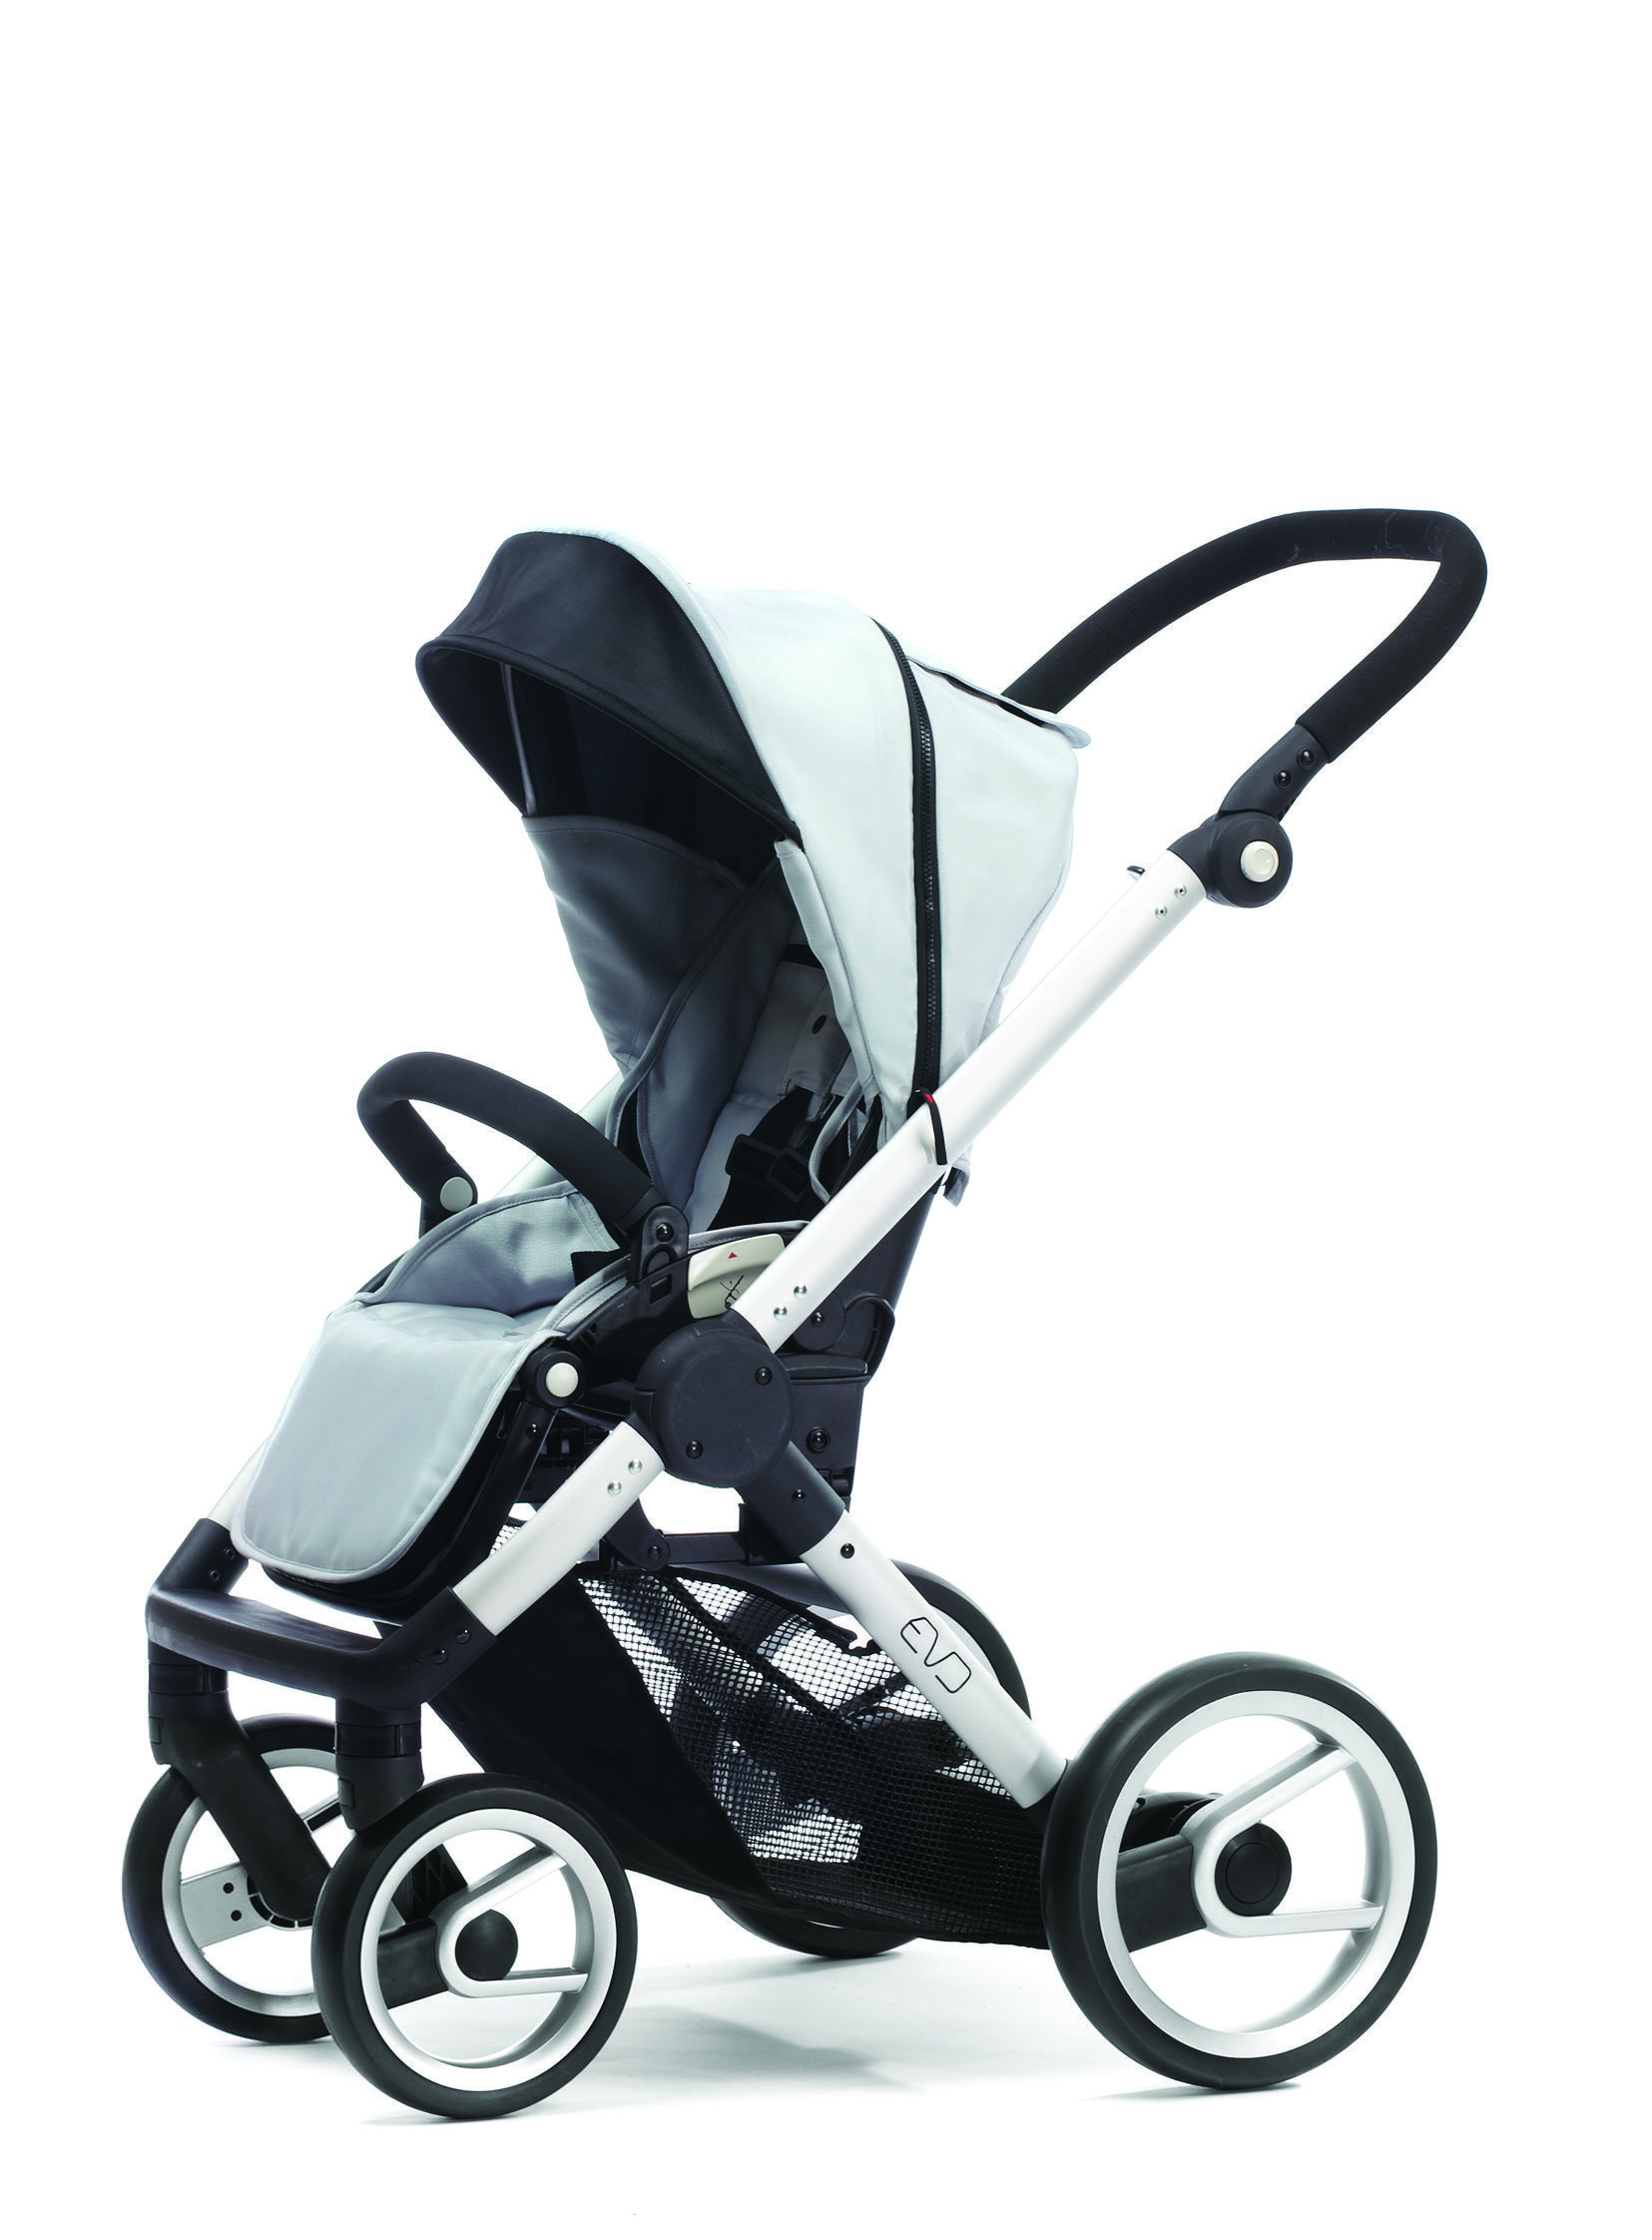 Baby Prams Target Pin By Dodge And Jeep Cars Images On Dodge And Jeep Cars